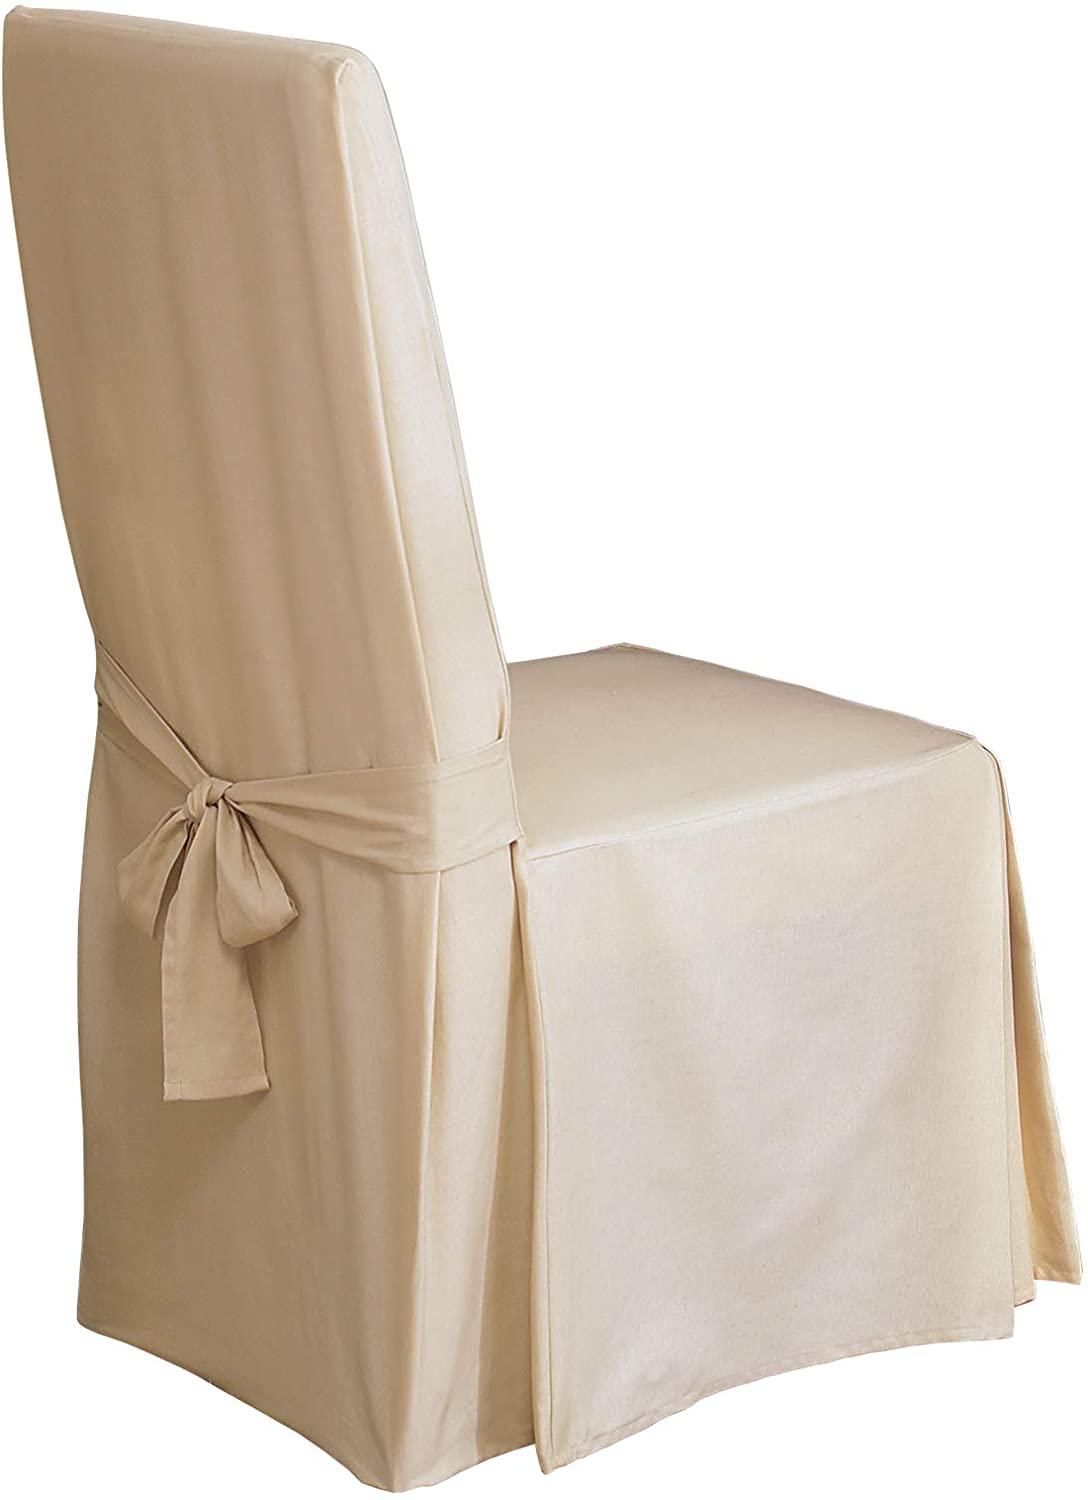 SureFit Long Dining Chair Slipcover - Cotton Duck - Up To 42 Inches Tall - Machine Washable - 100% Cotton - Natural: Furniture & Decor